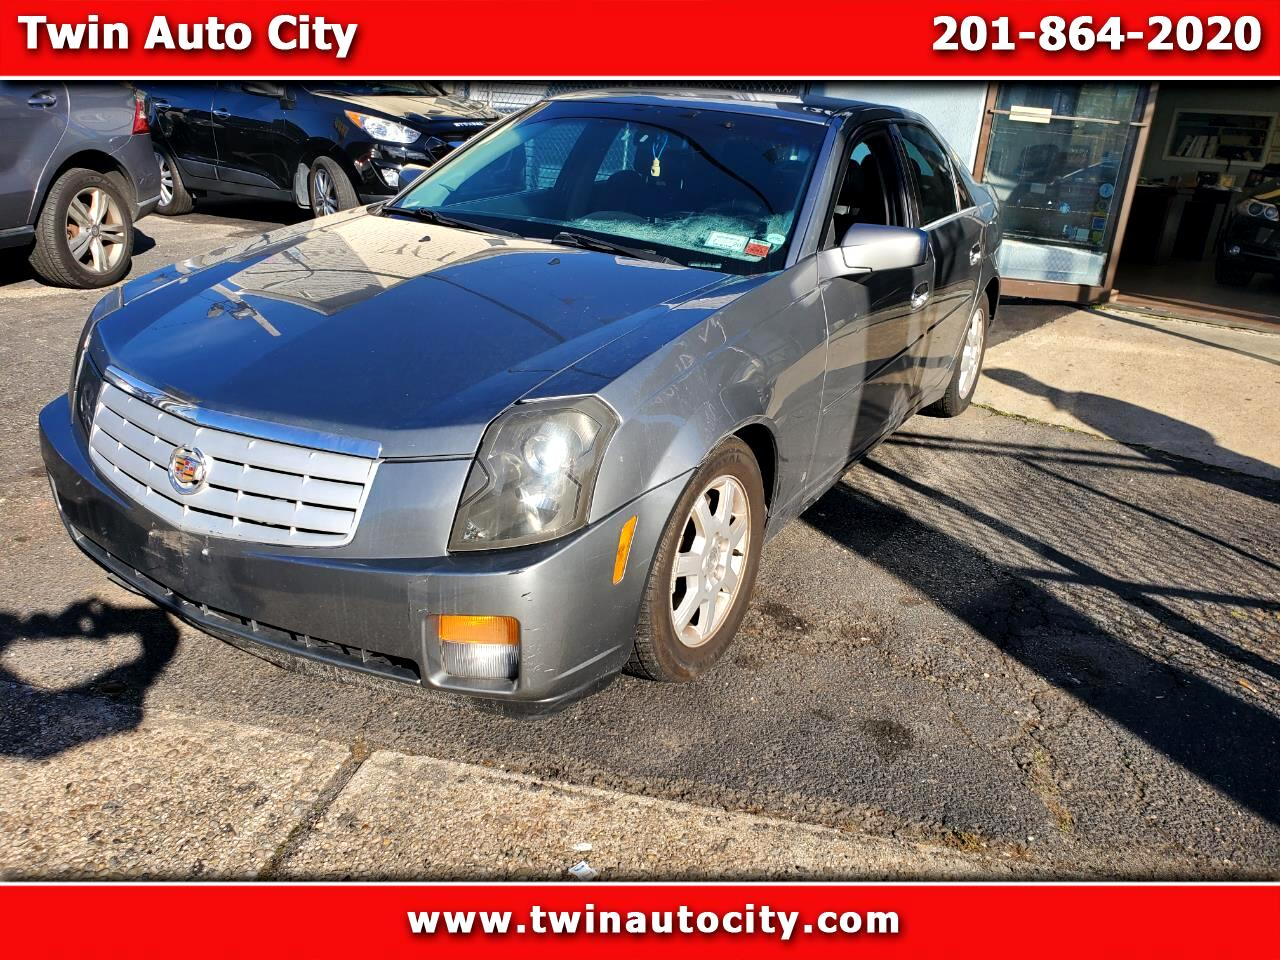 Cadillac CTS 4dr Sdn 2.8L 2006